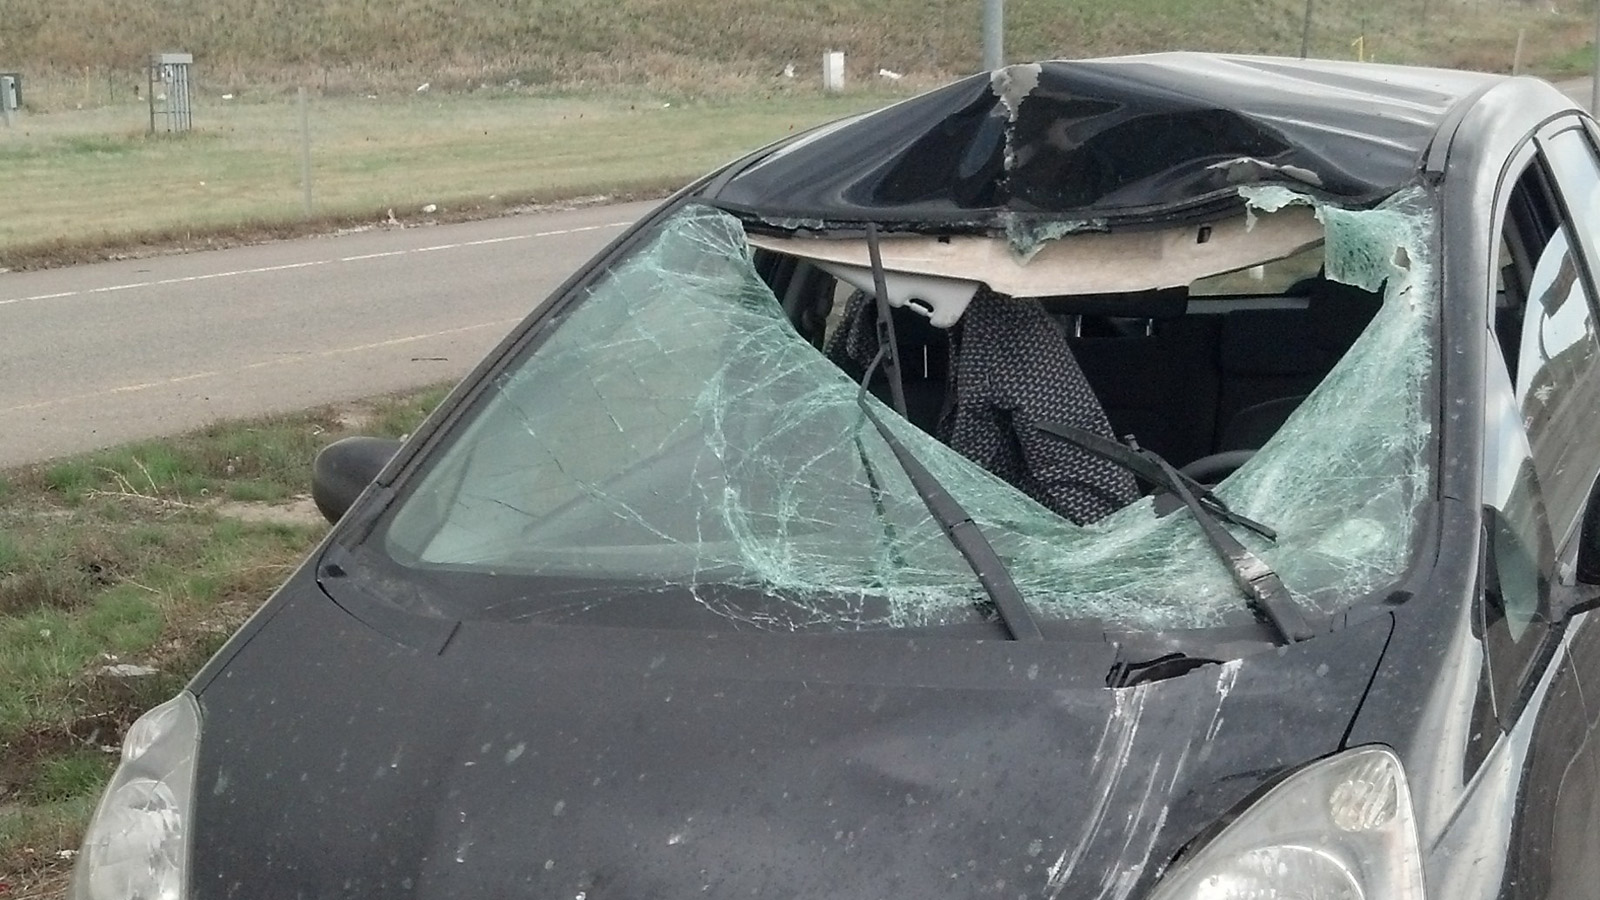 Martin Tsibrov's car after a portion of the concrete barrier smashed through the windshield (credit: Martin Tsibrov)